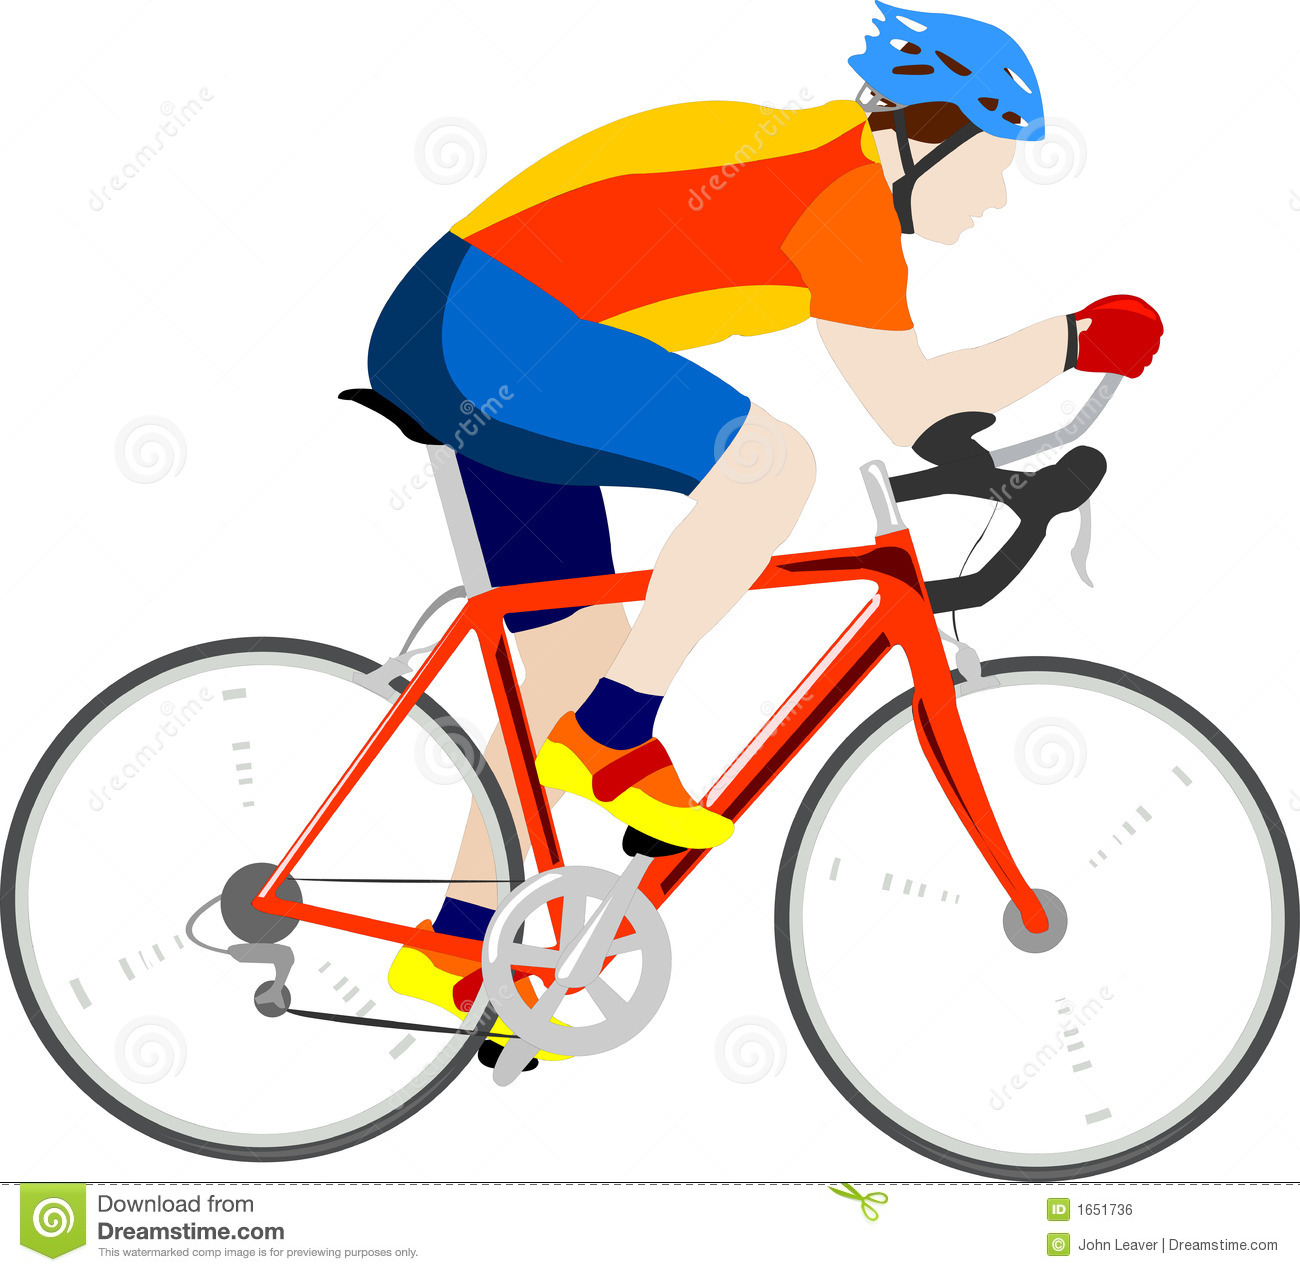 Cyclist stock vector. Illustration of gloves, racing ...